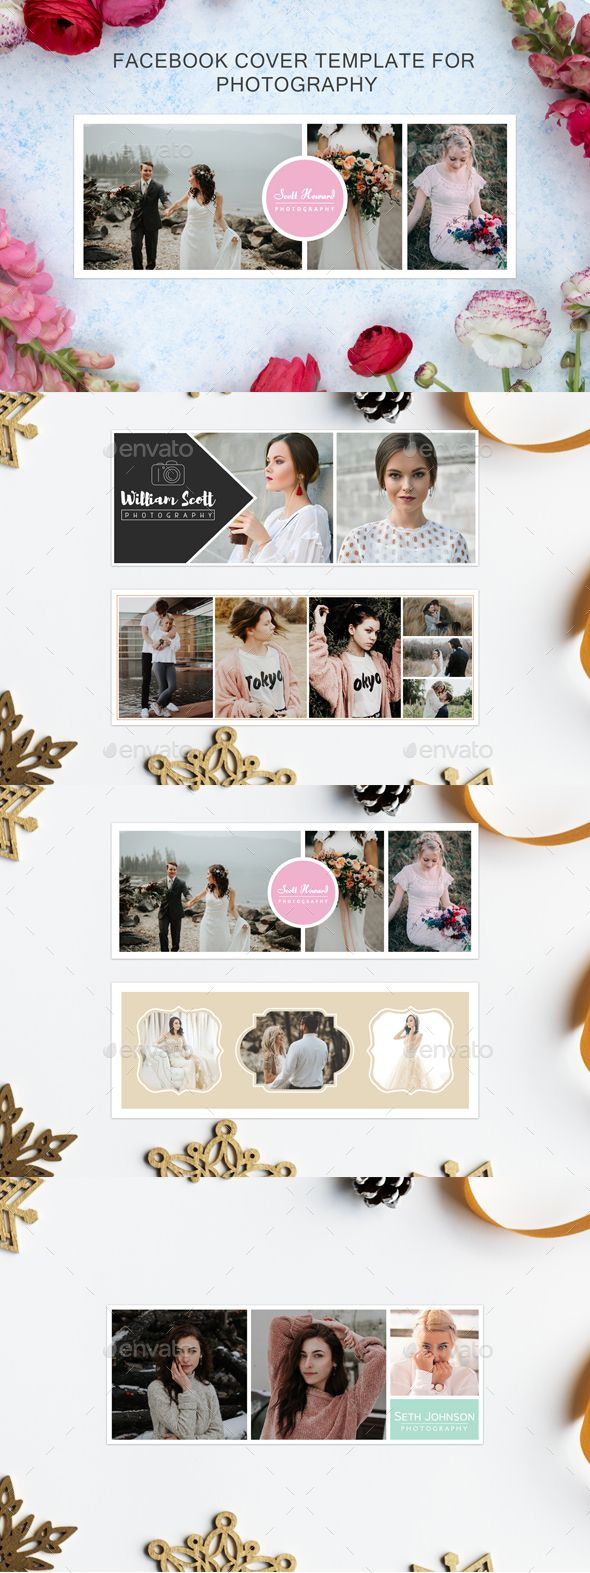 5 Facebook Cover Template for Photography